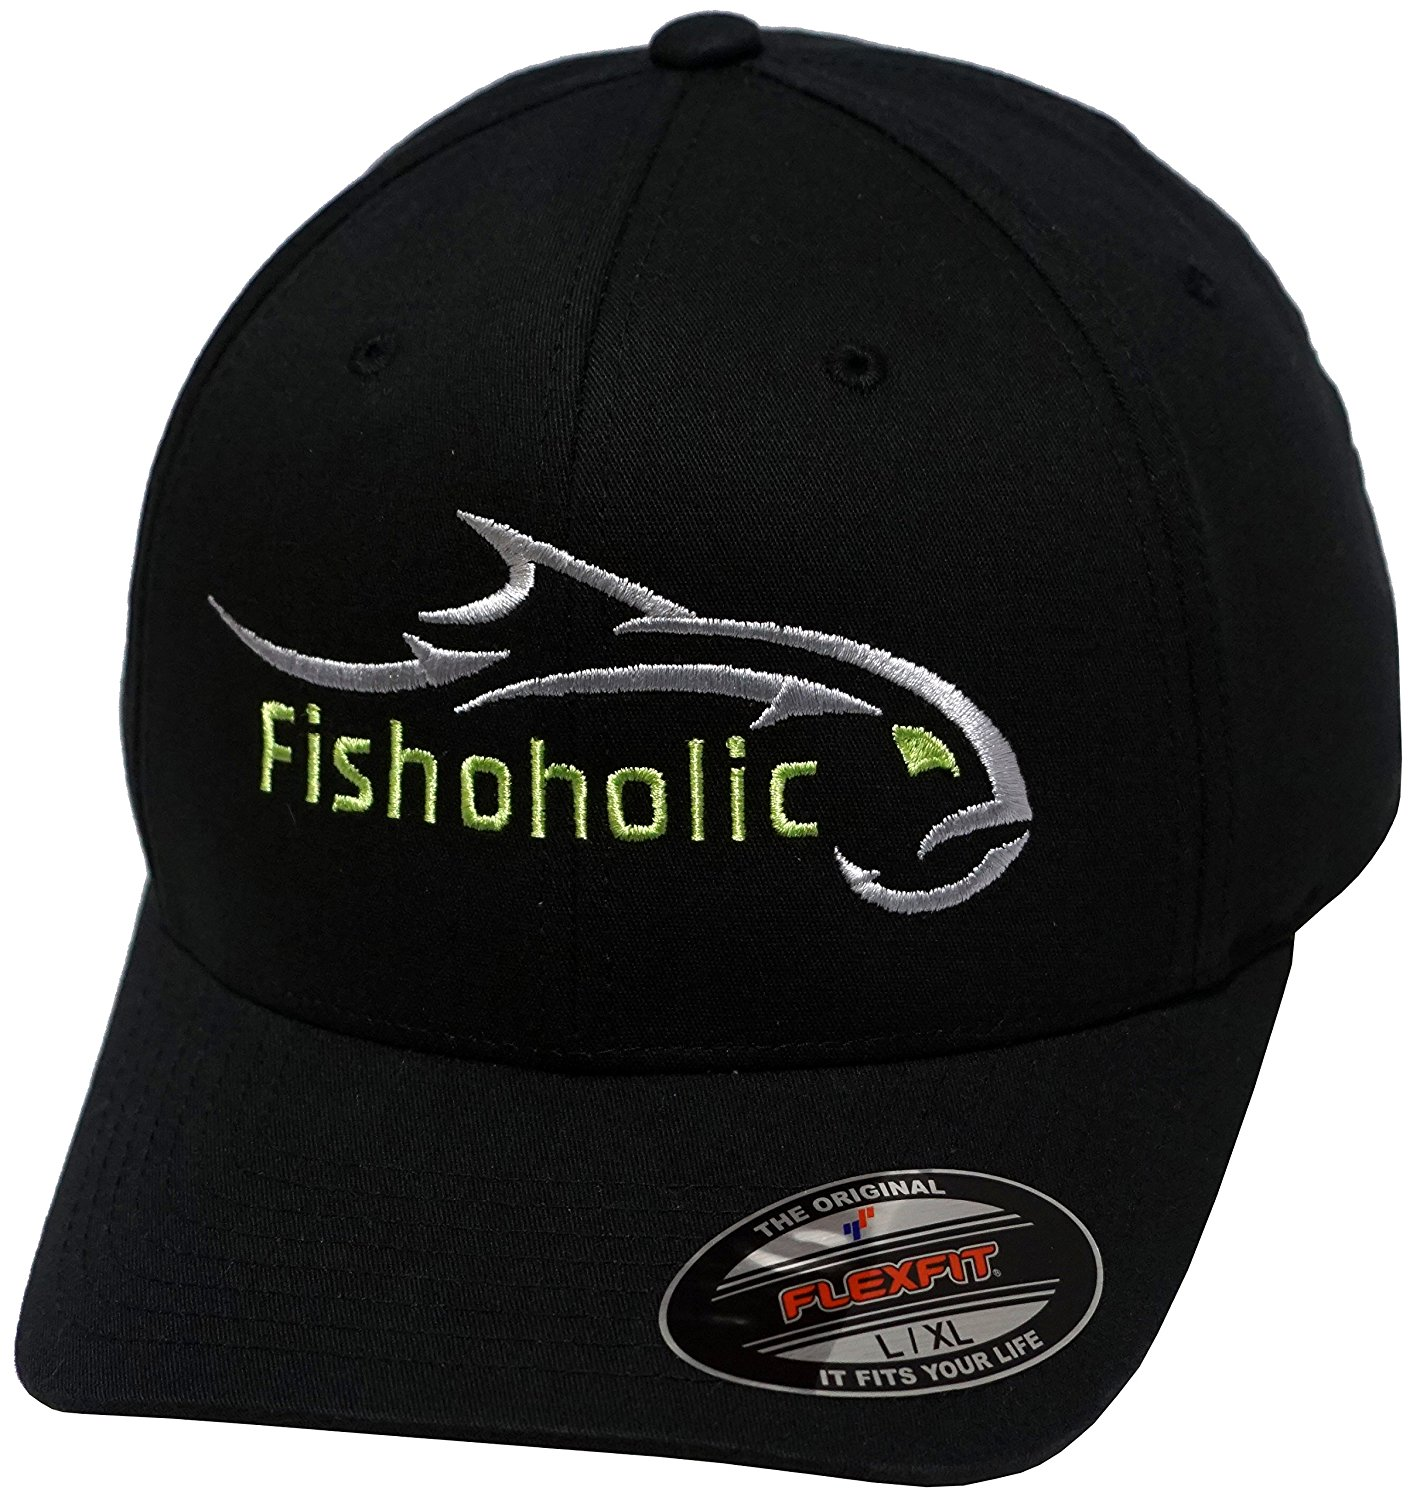 Fishoholic R Flexfit Black Baseball Fishing Hat w' Silver & GREEN Embroidery Front & Back. Great Gift. Fishaholic USPTO Registered Trademark. (FF-blk-SlvrGREEN-L/XL)